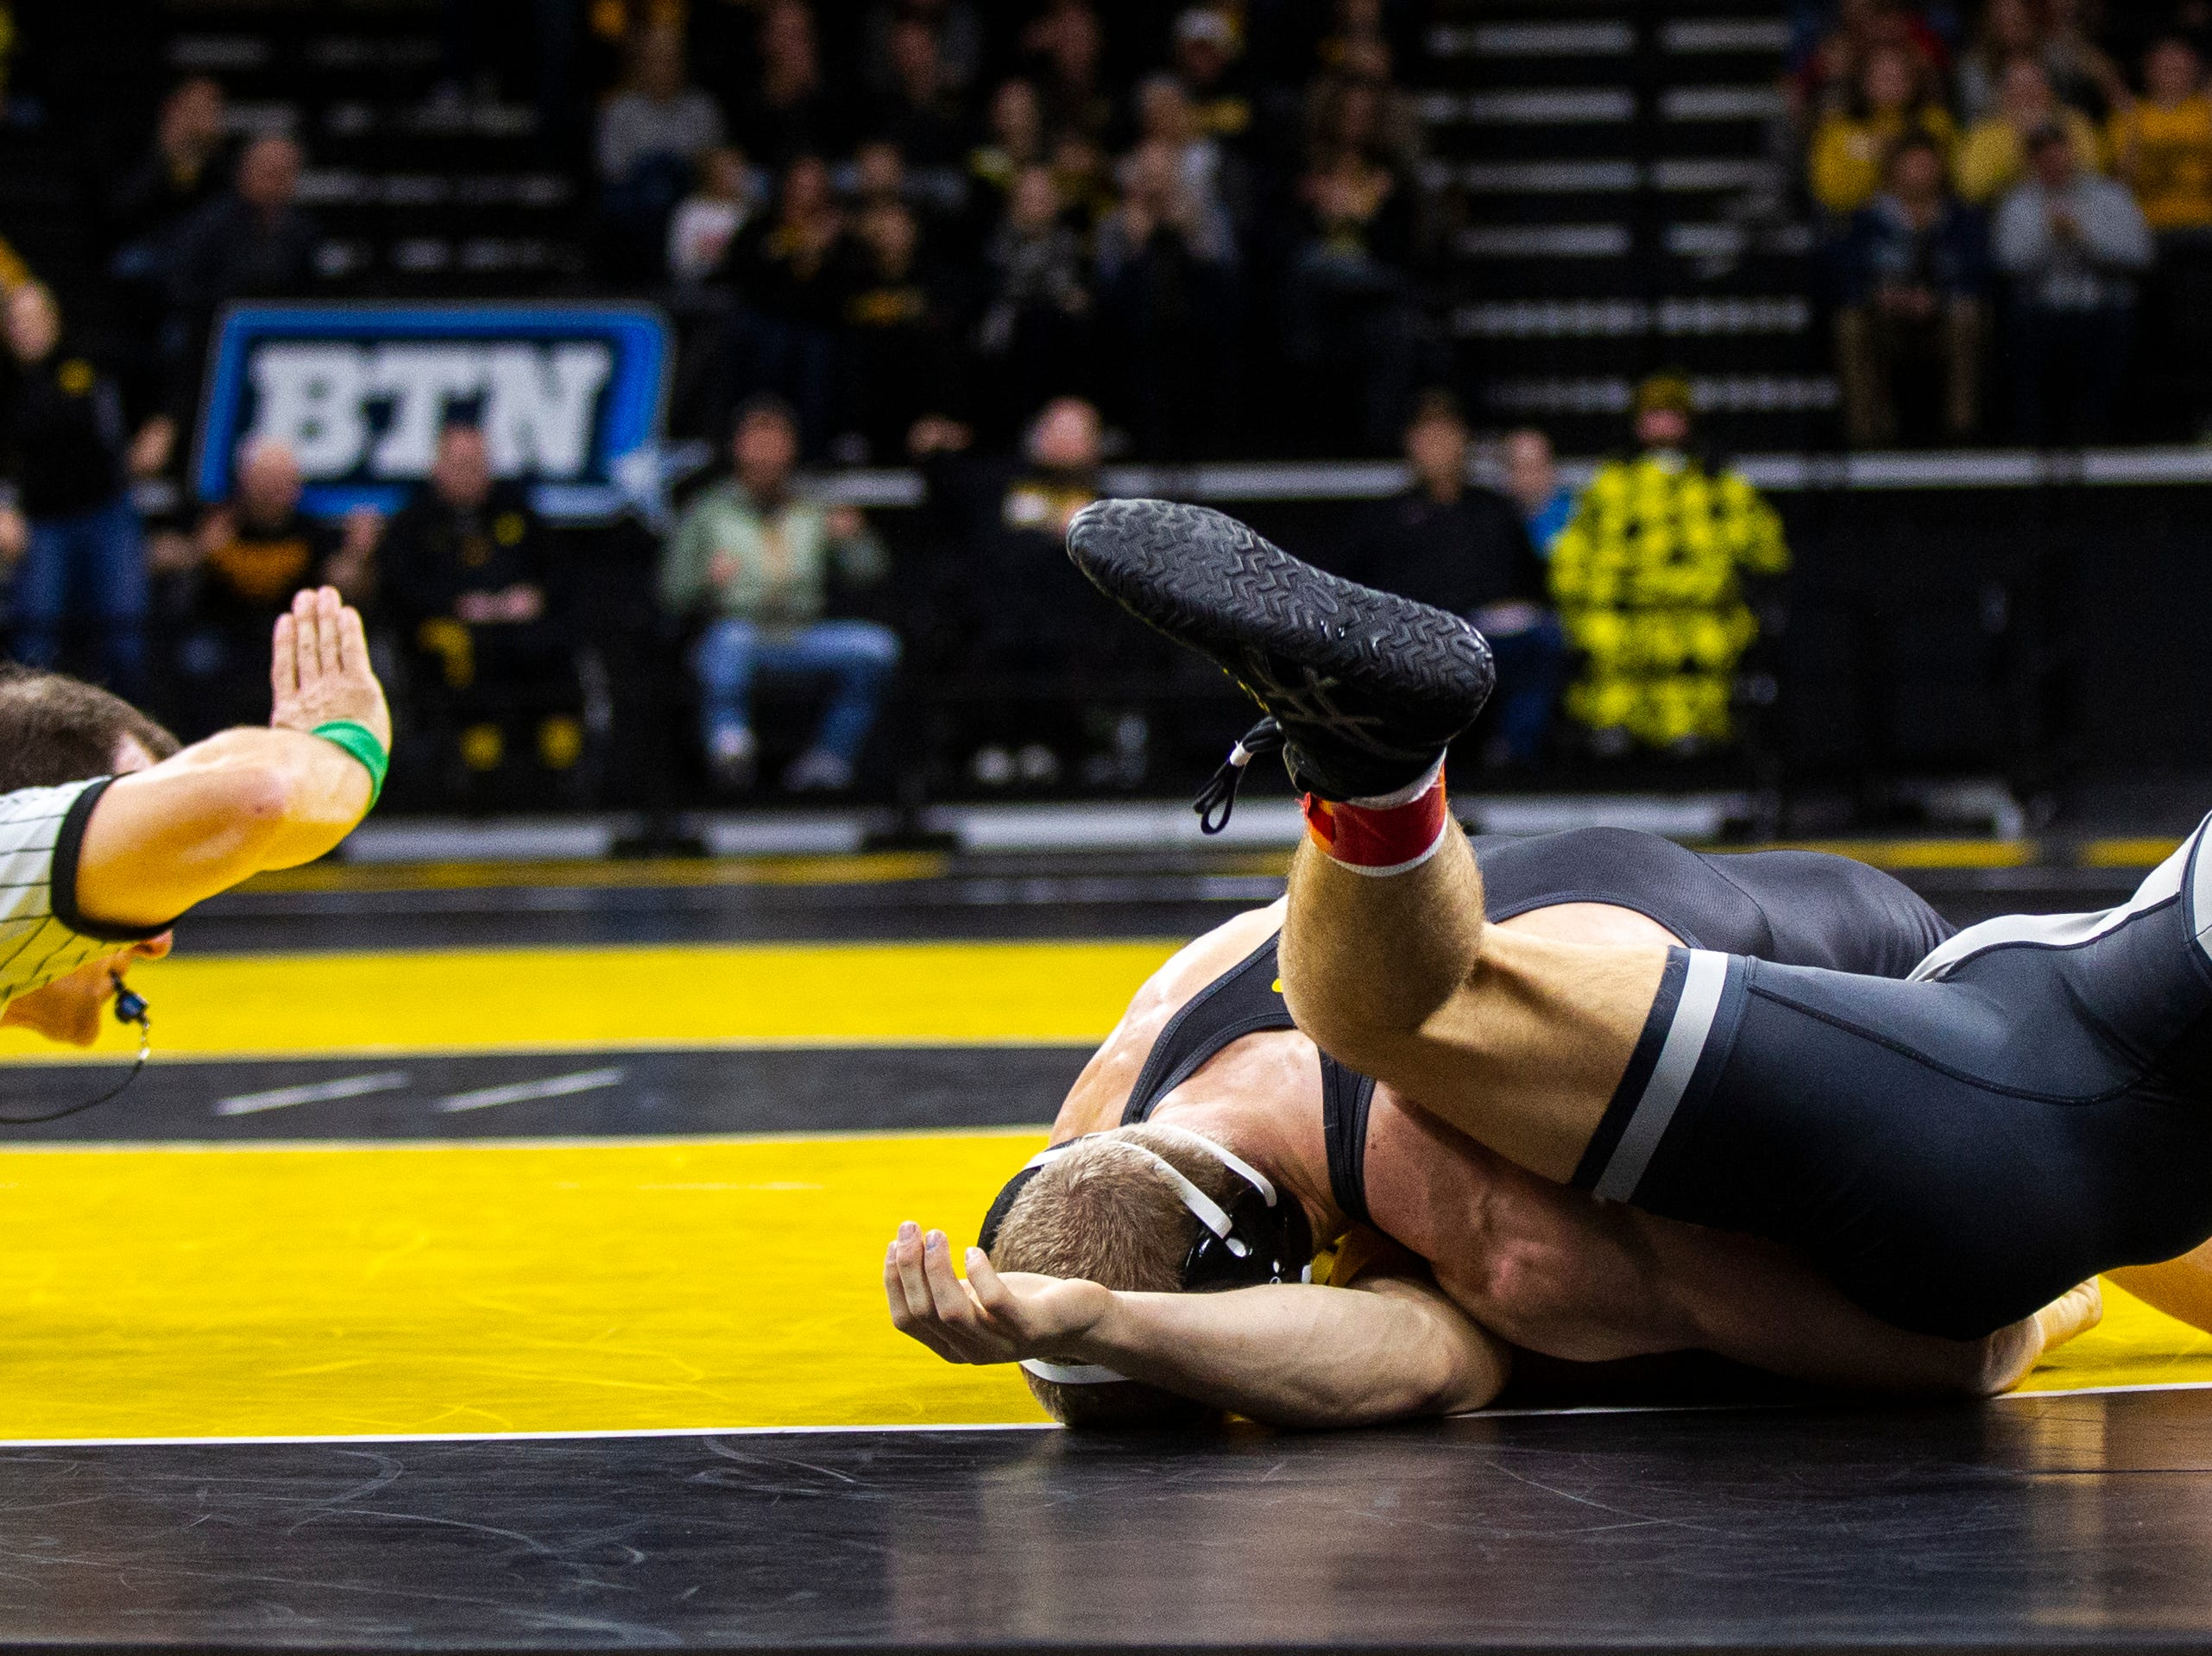 Iowa's Kaleb Young pins Purdue's Griffin Parriott at 157 during a Big Ten Conference NCAA wrestling dual on Saturday, Nov. 24, 2018, at Carver-Hawkeye Arena in Iowa City.